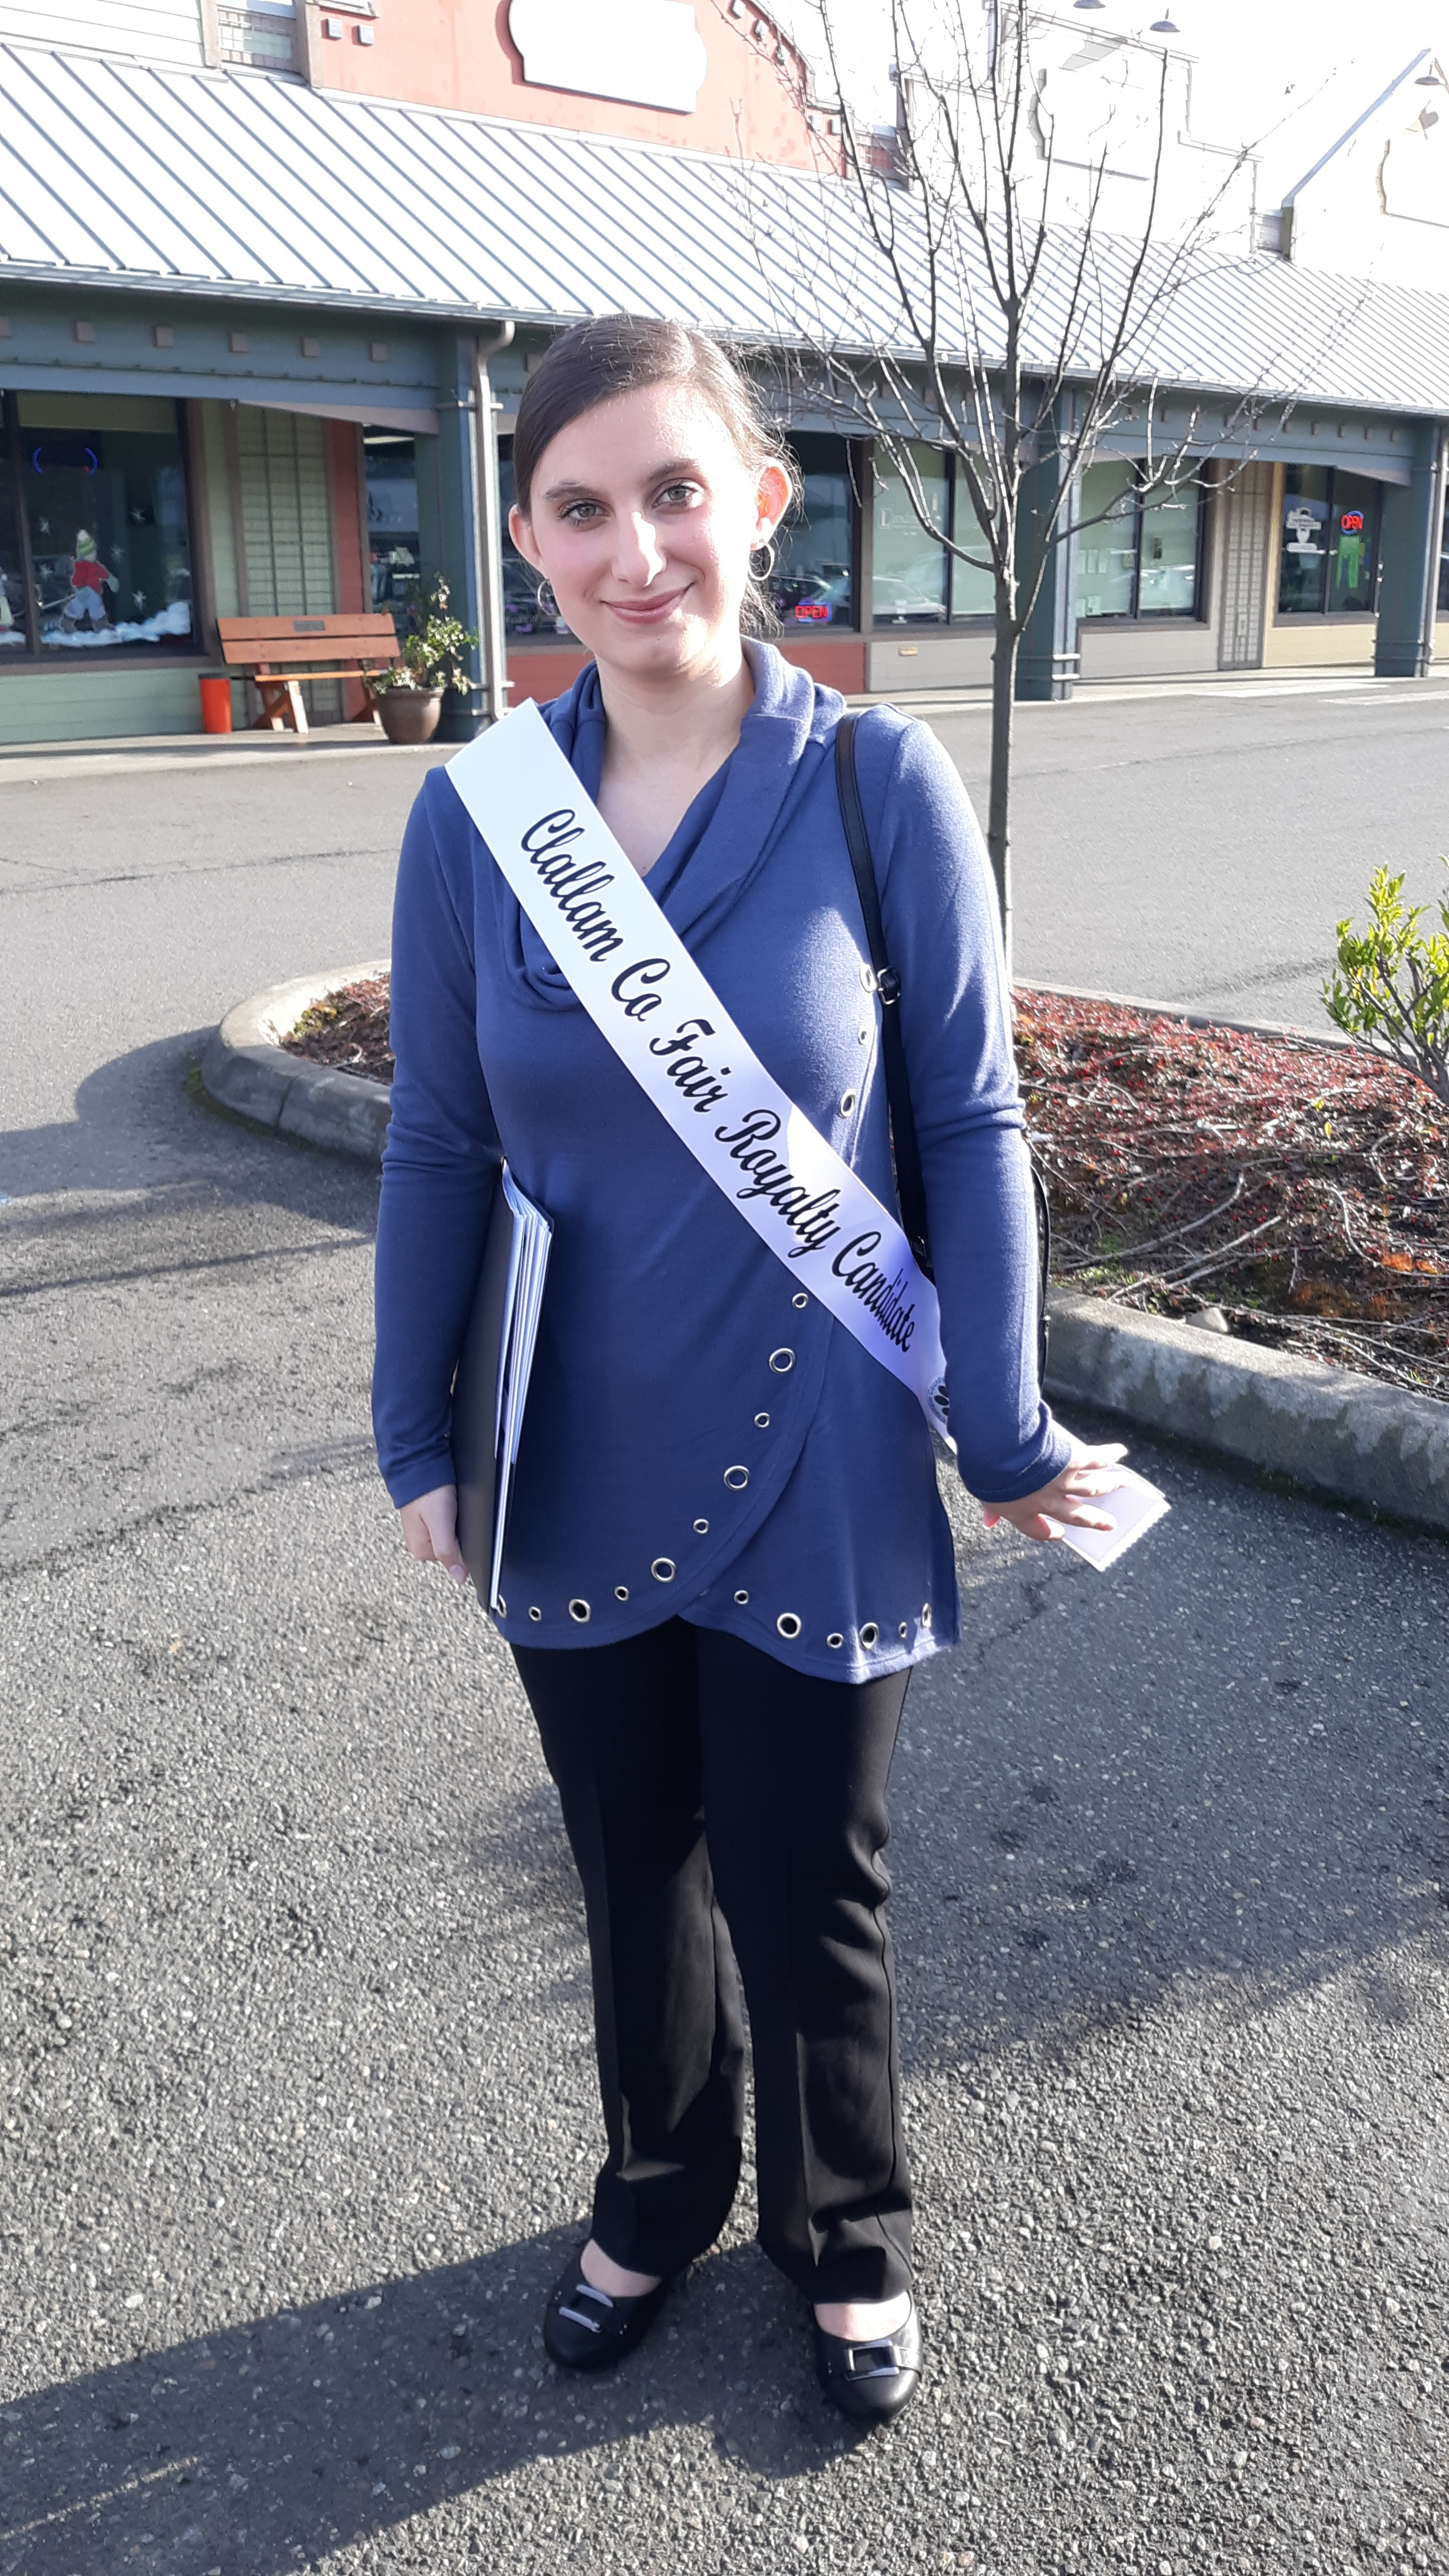 Rebekah Parker Clallam County Fair Royalty